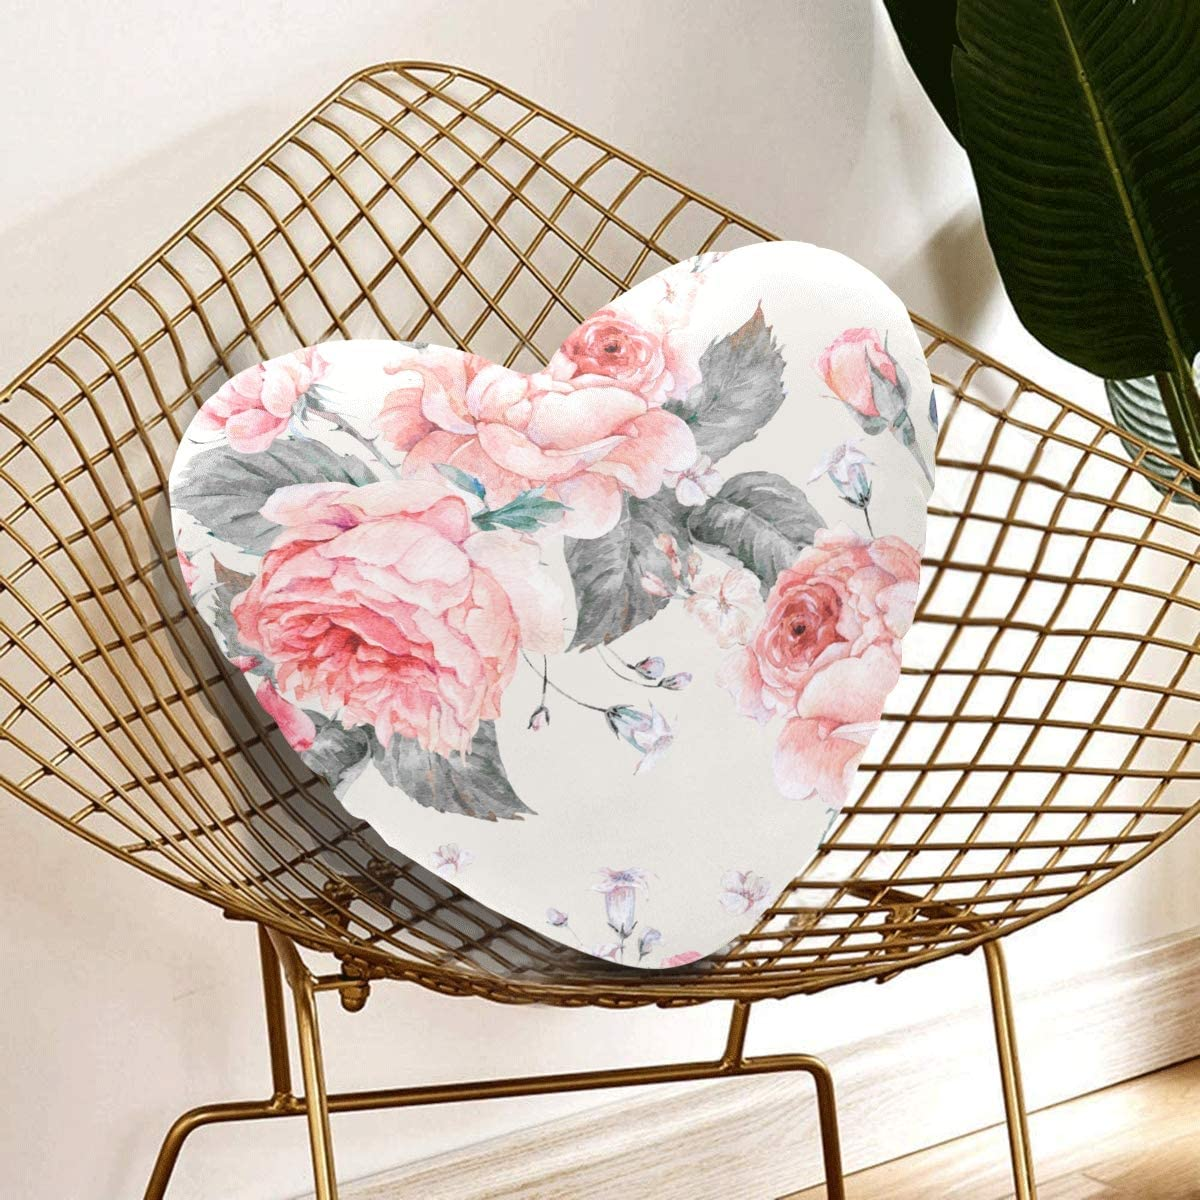 Yagqiny Personalized Heart Pillow Blooming English Rose Watercolor Heart Shaped Pillows For Girls 13 78 X 13 78 Inch Heart Shaped Cushion Gift For Friends Children Girl Valentine S Day Home Kitchen